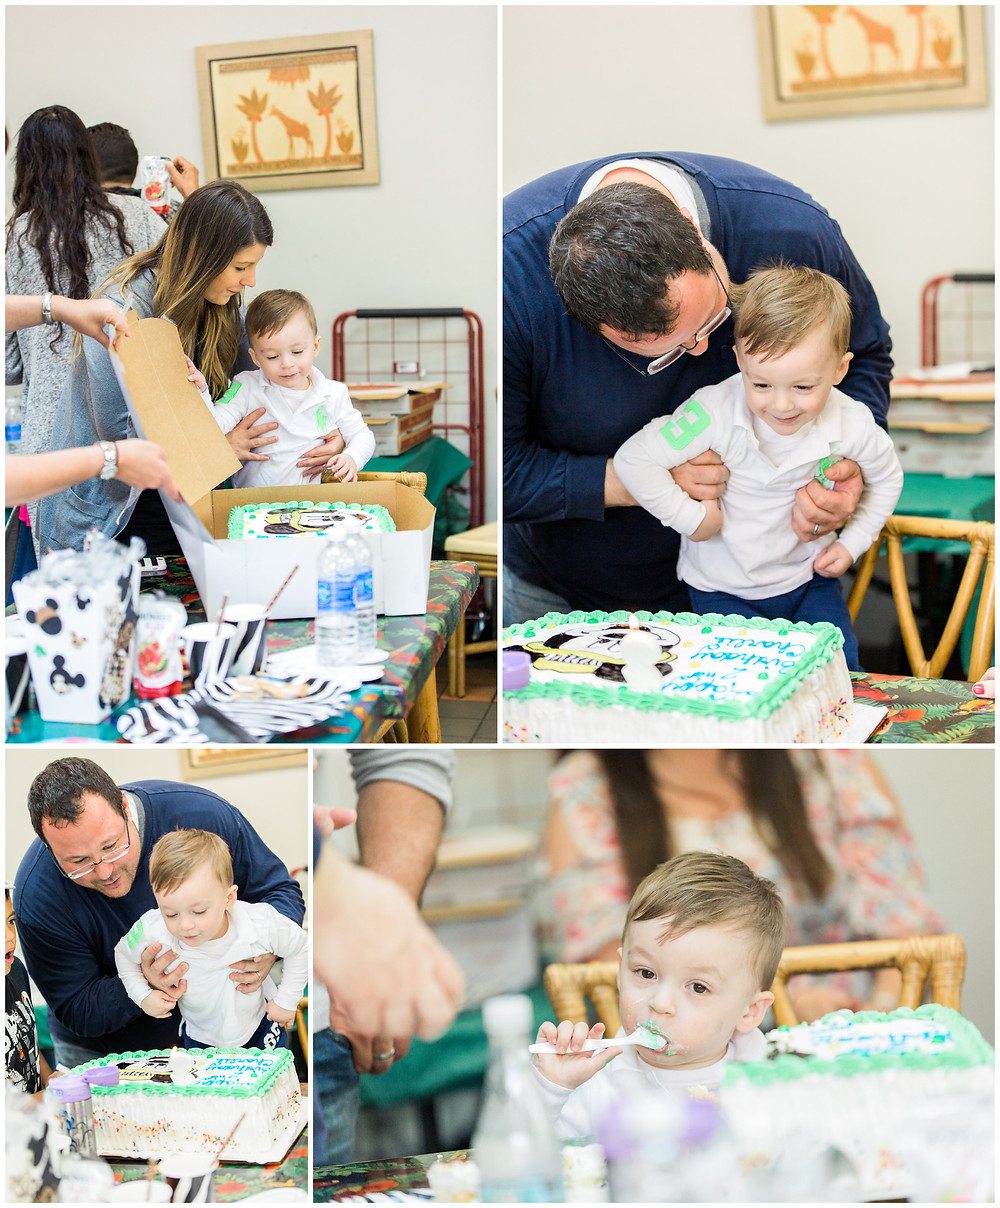 cake time at zoo birthday party